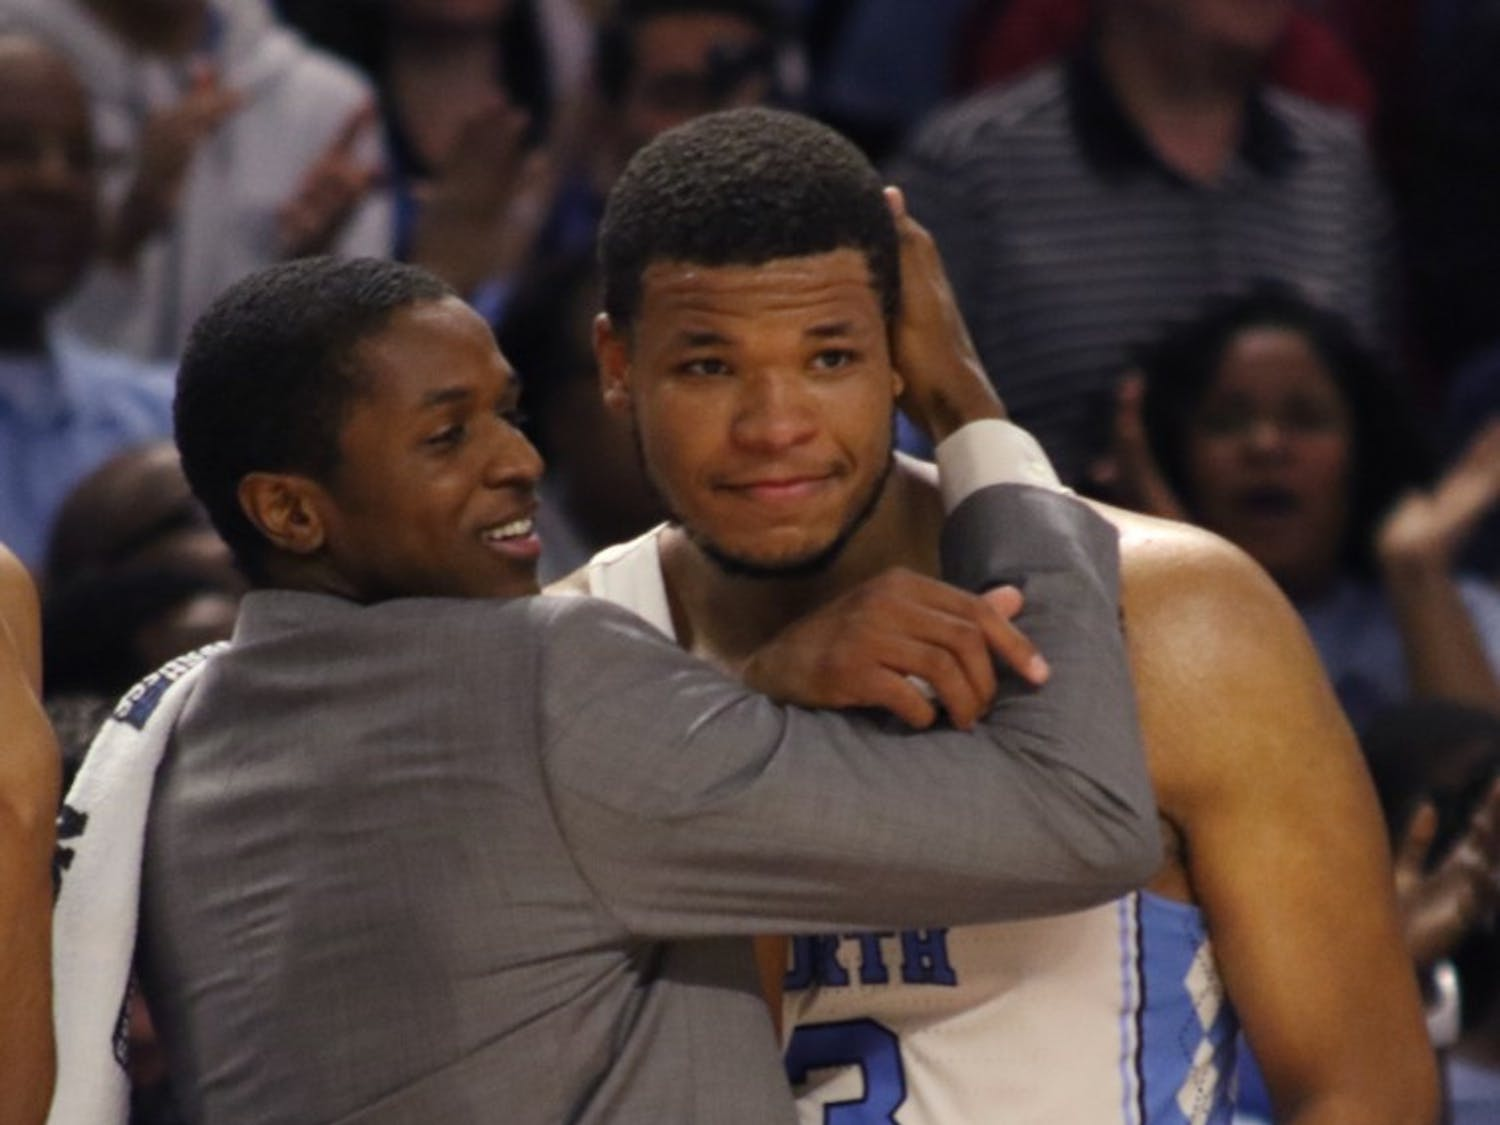 North Carolina forward Kennedy Meeks (3) is embraced by guard Kenny Williams on the bench at the end of the team's victory of Arkansas in the second round of the NCAA Tournament in Greenville on Sunday.